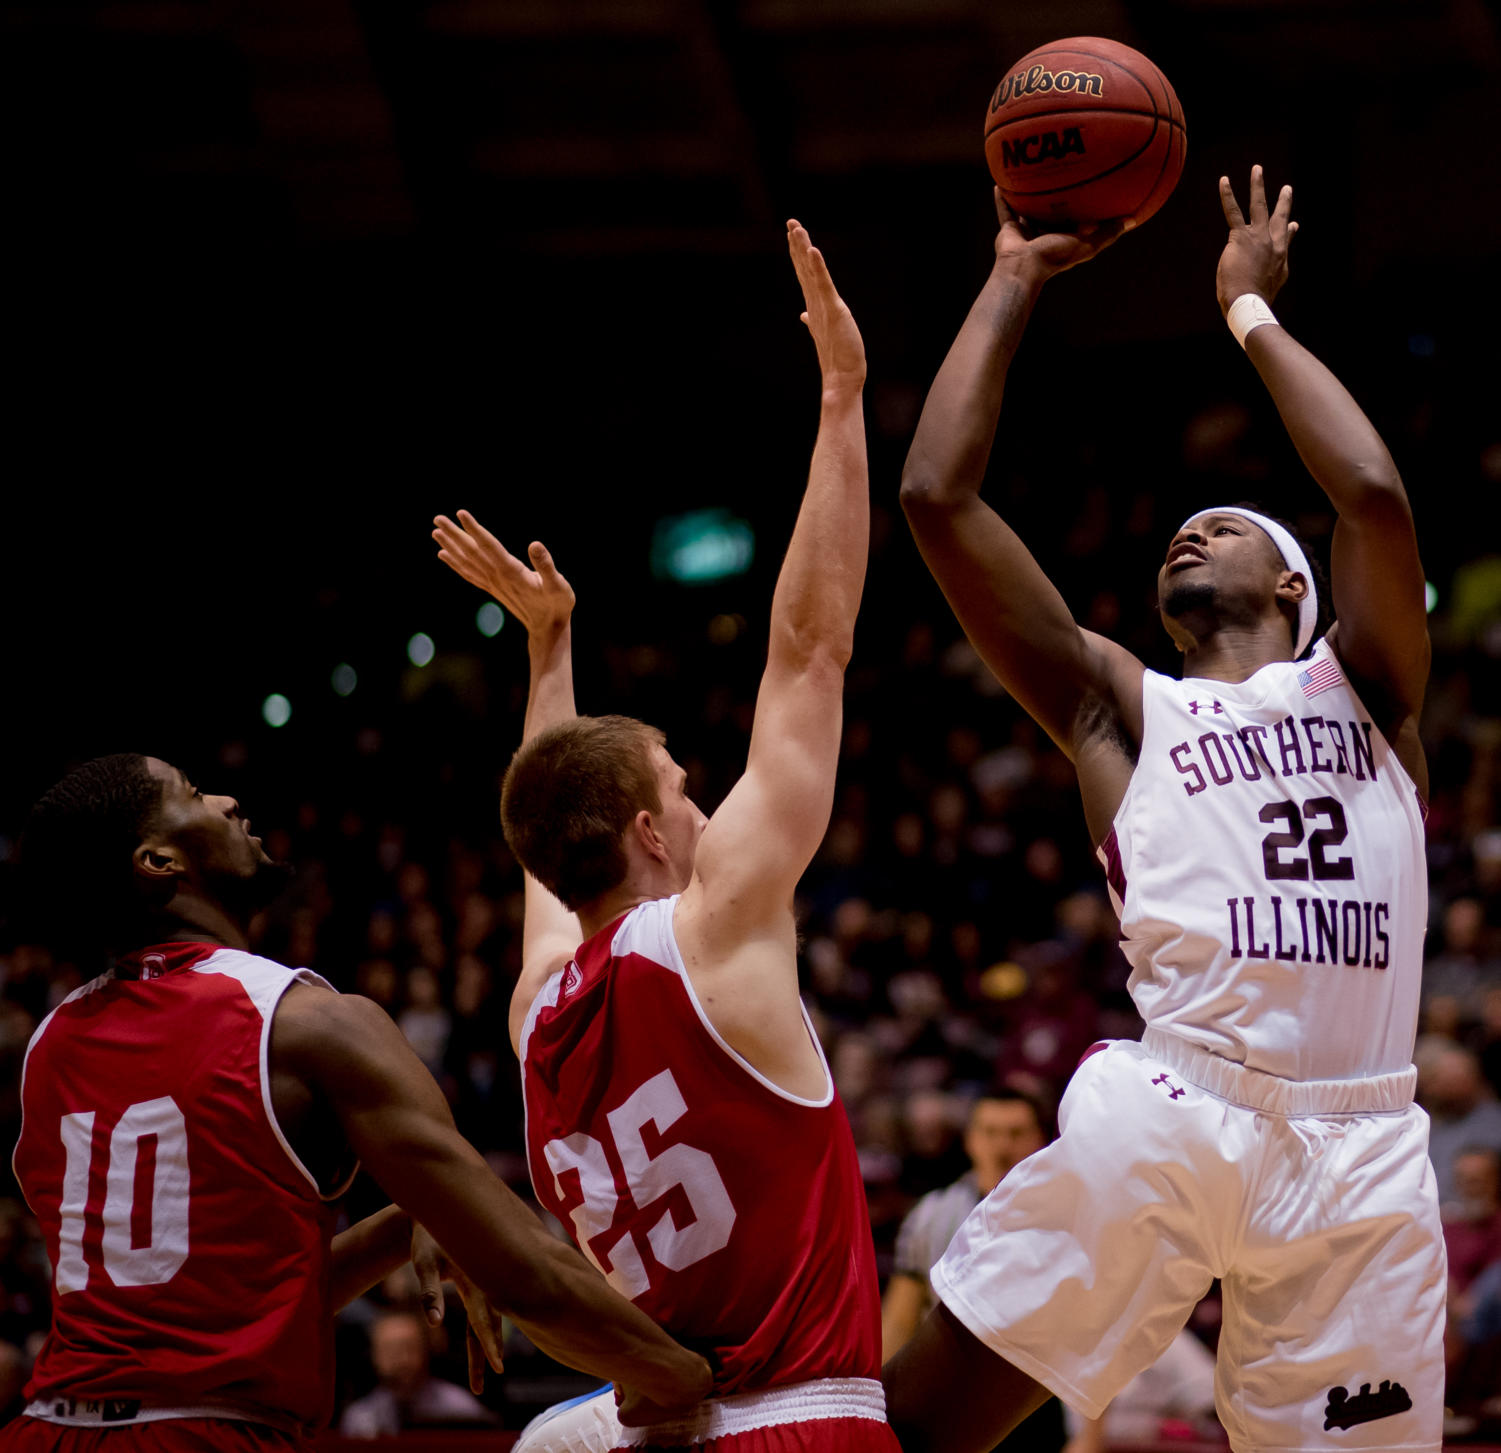 Junior guard Armon Fletcher goes for a basket Sunday, Feb. 11, 2018, during the Salukis' 74-57 win against the Bradley Braves at SIU Arena. The Salukis are now the lone second place team in the Missouri Valley Conference. (Brian Munoz | @BrianMMunoz)